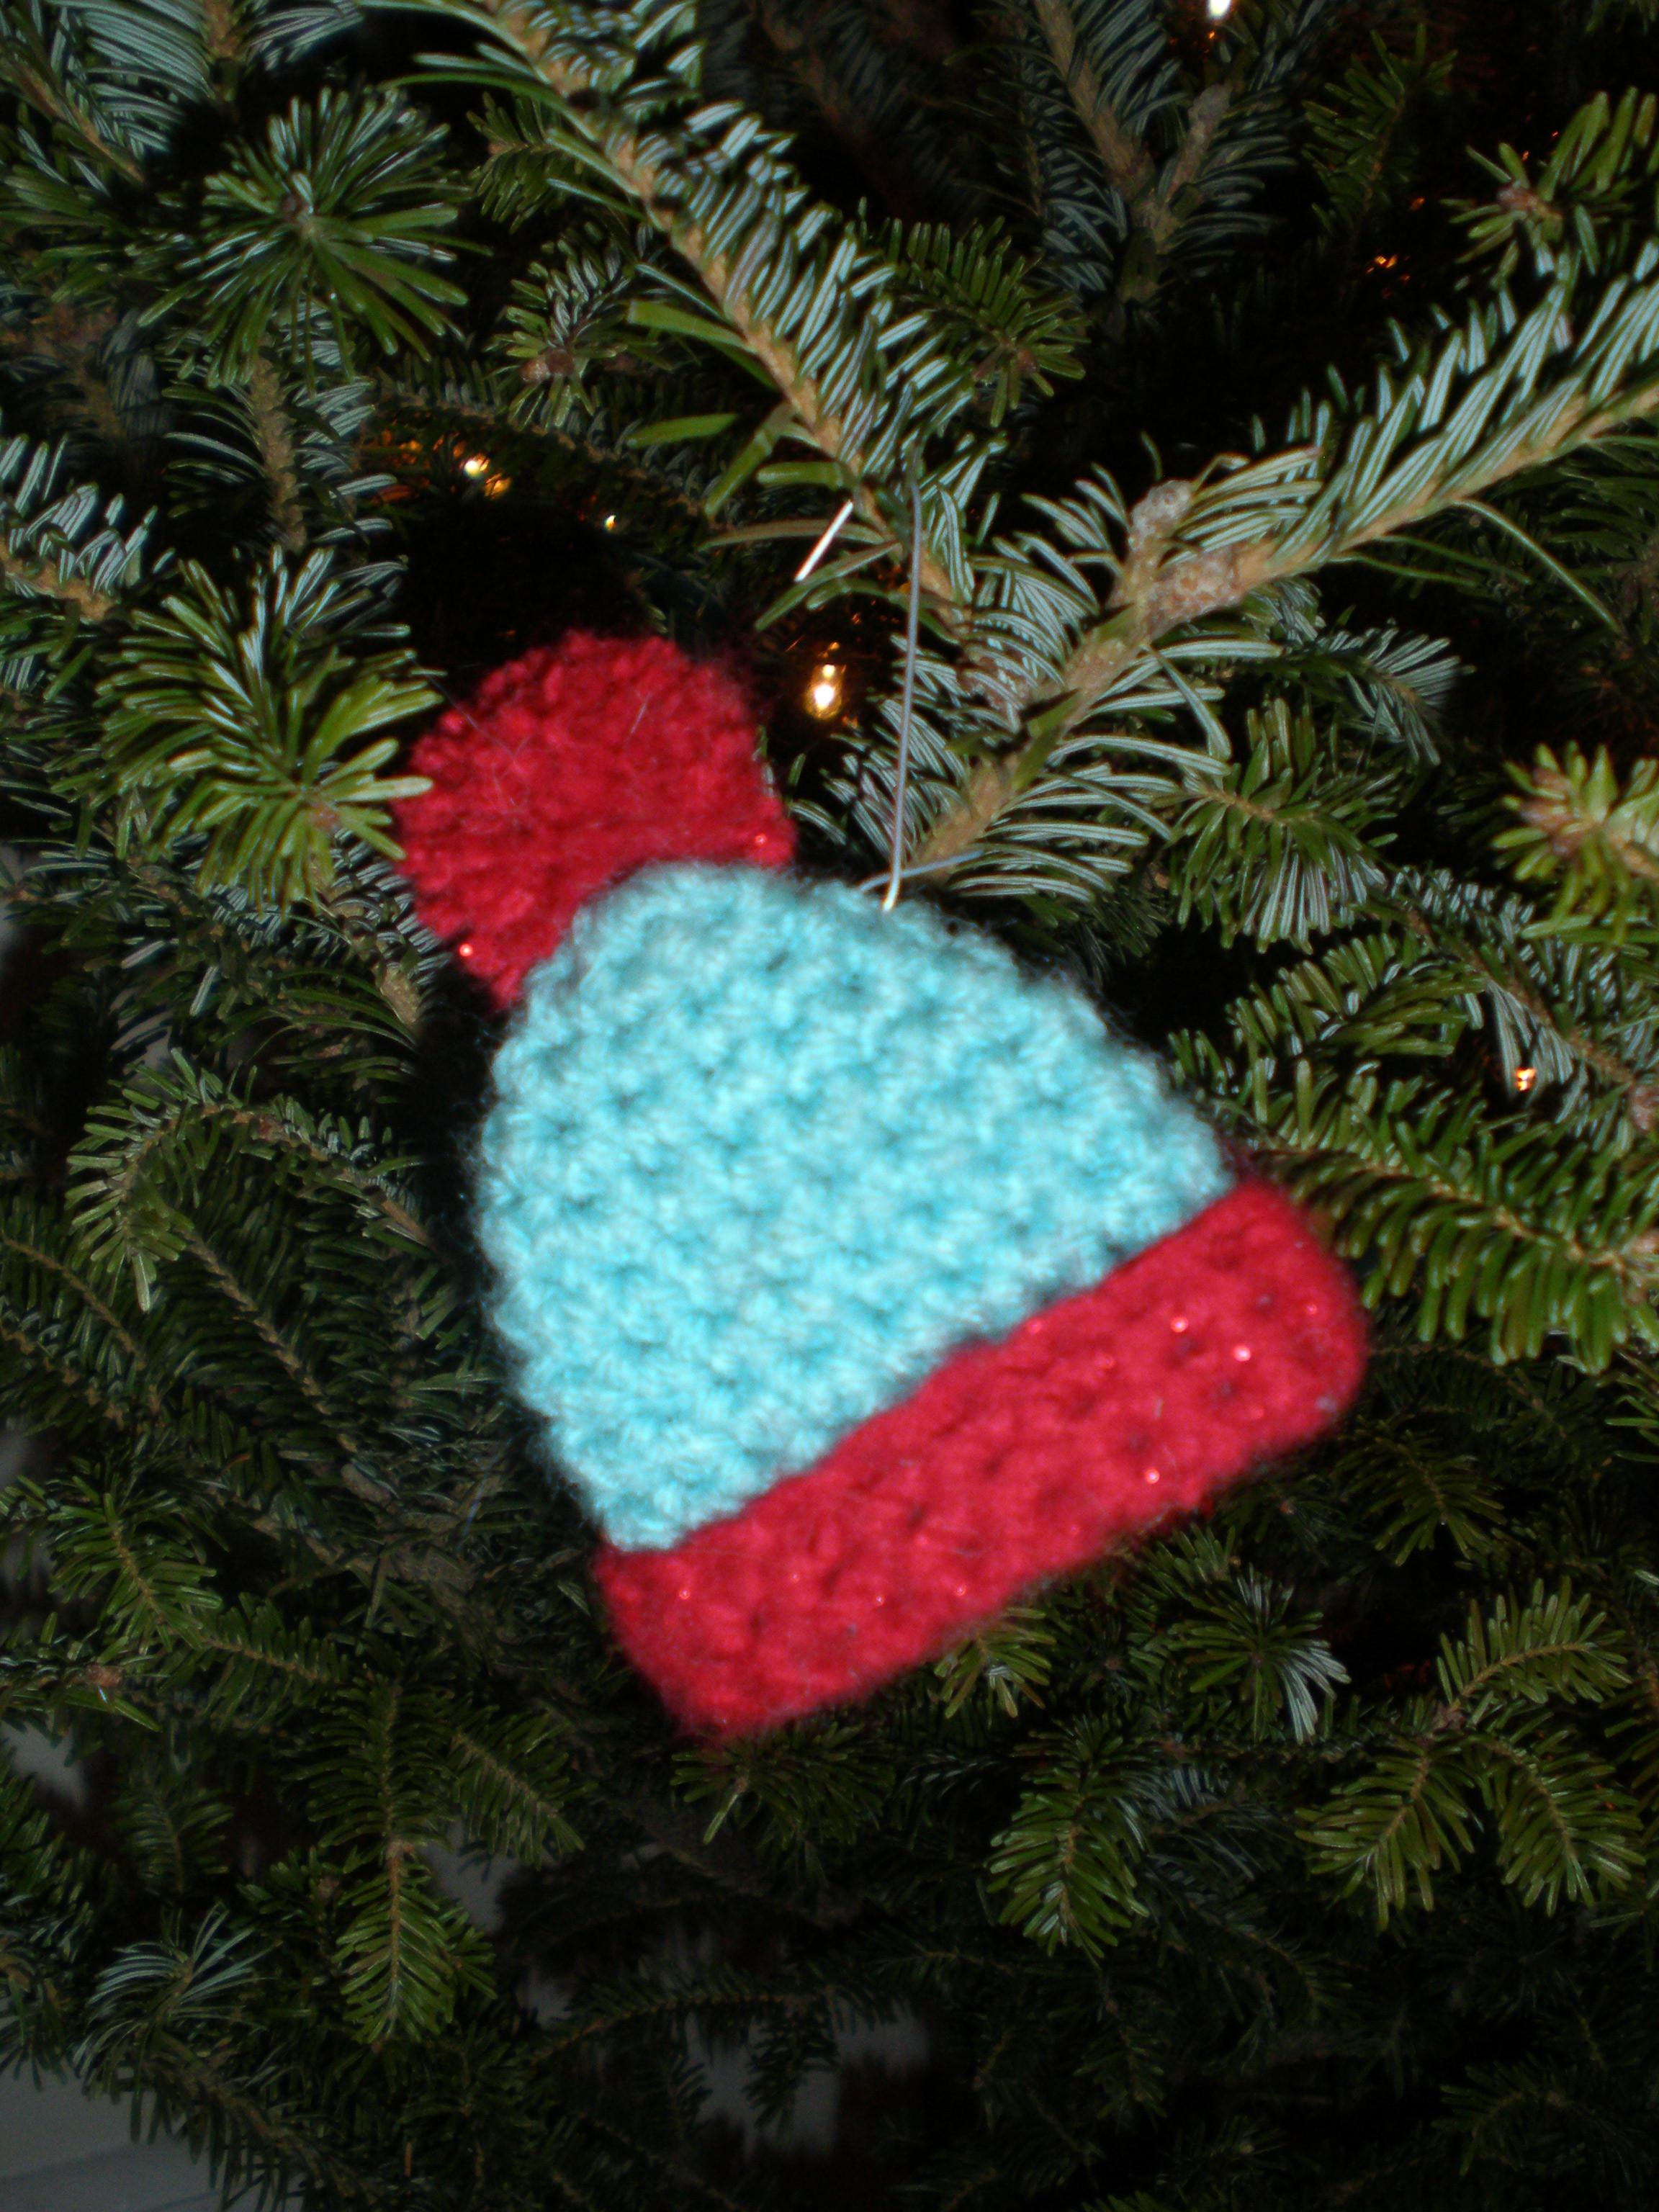 Crochet Christmas Ornaments Little Nutbrown Squirrel